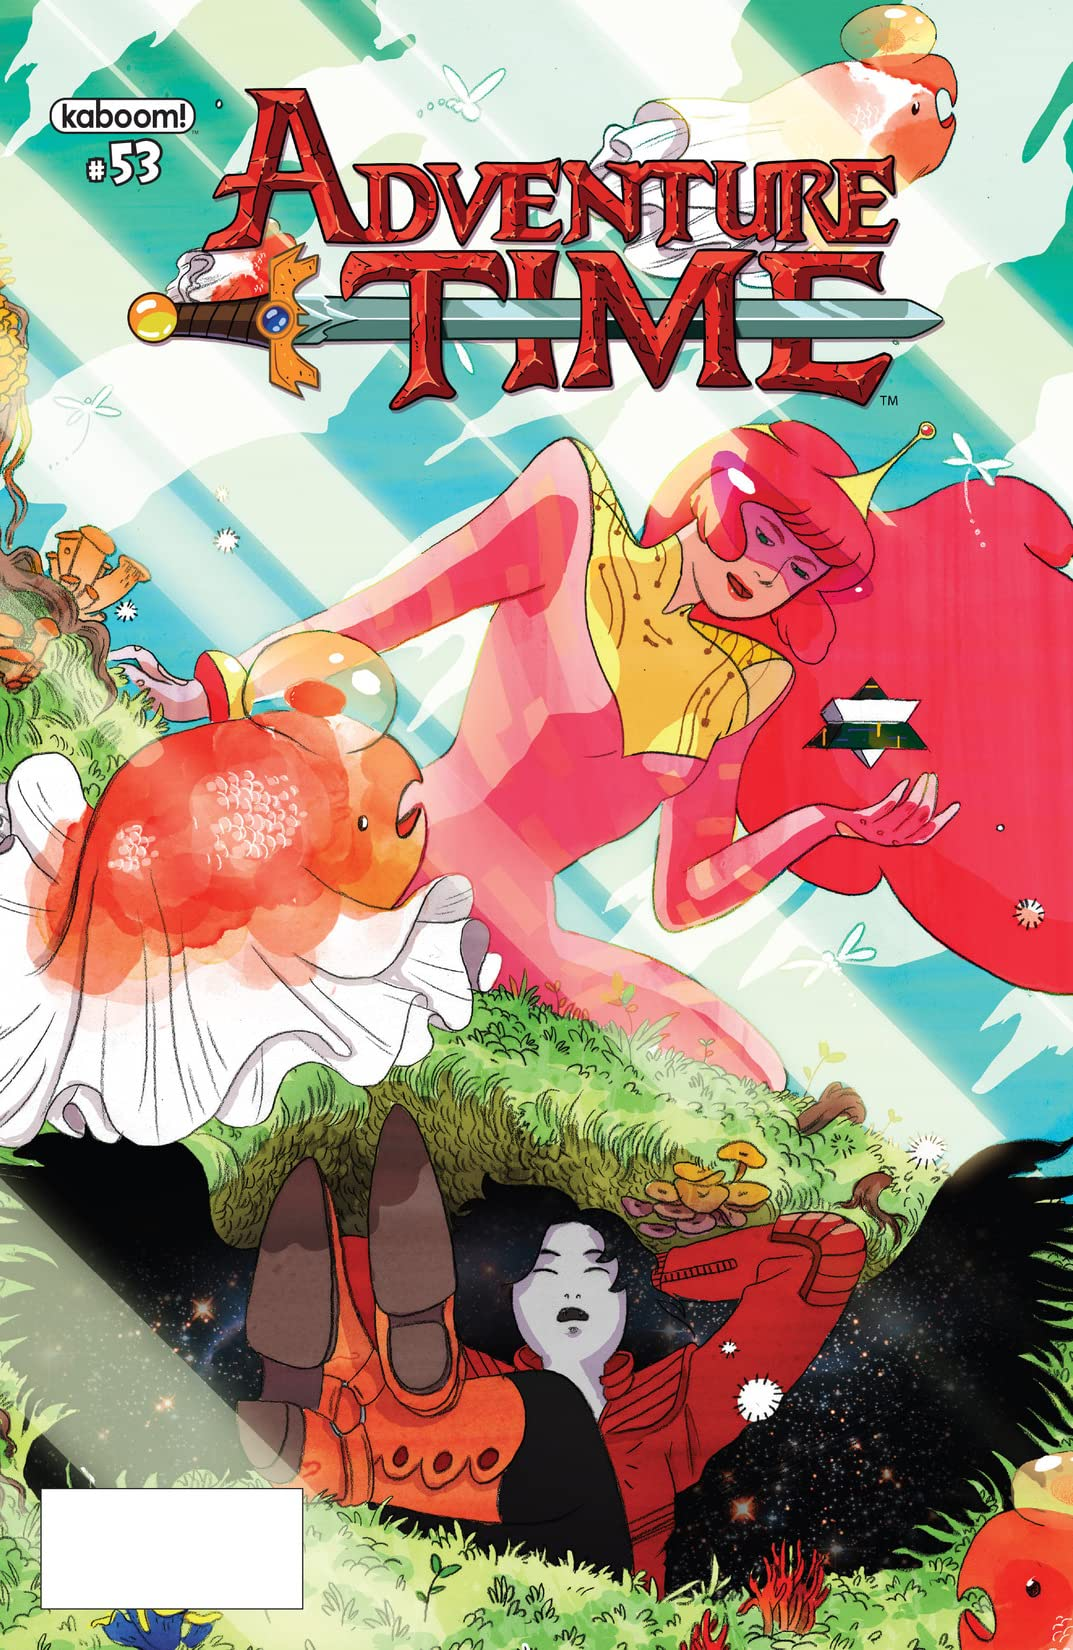 Adventure Time #53